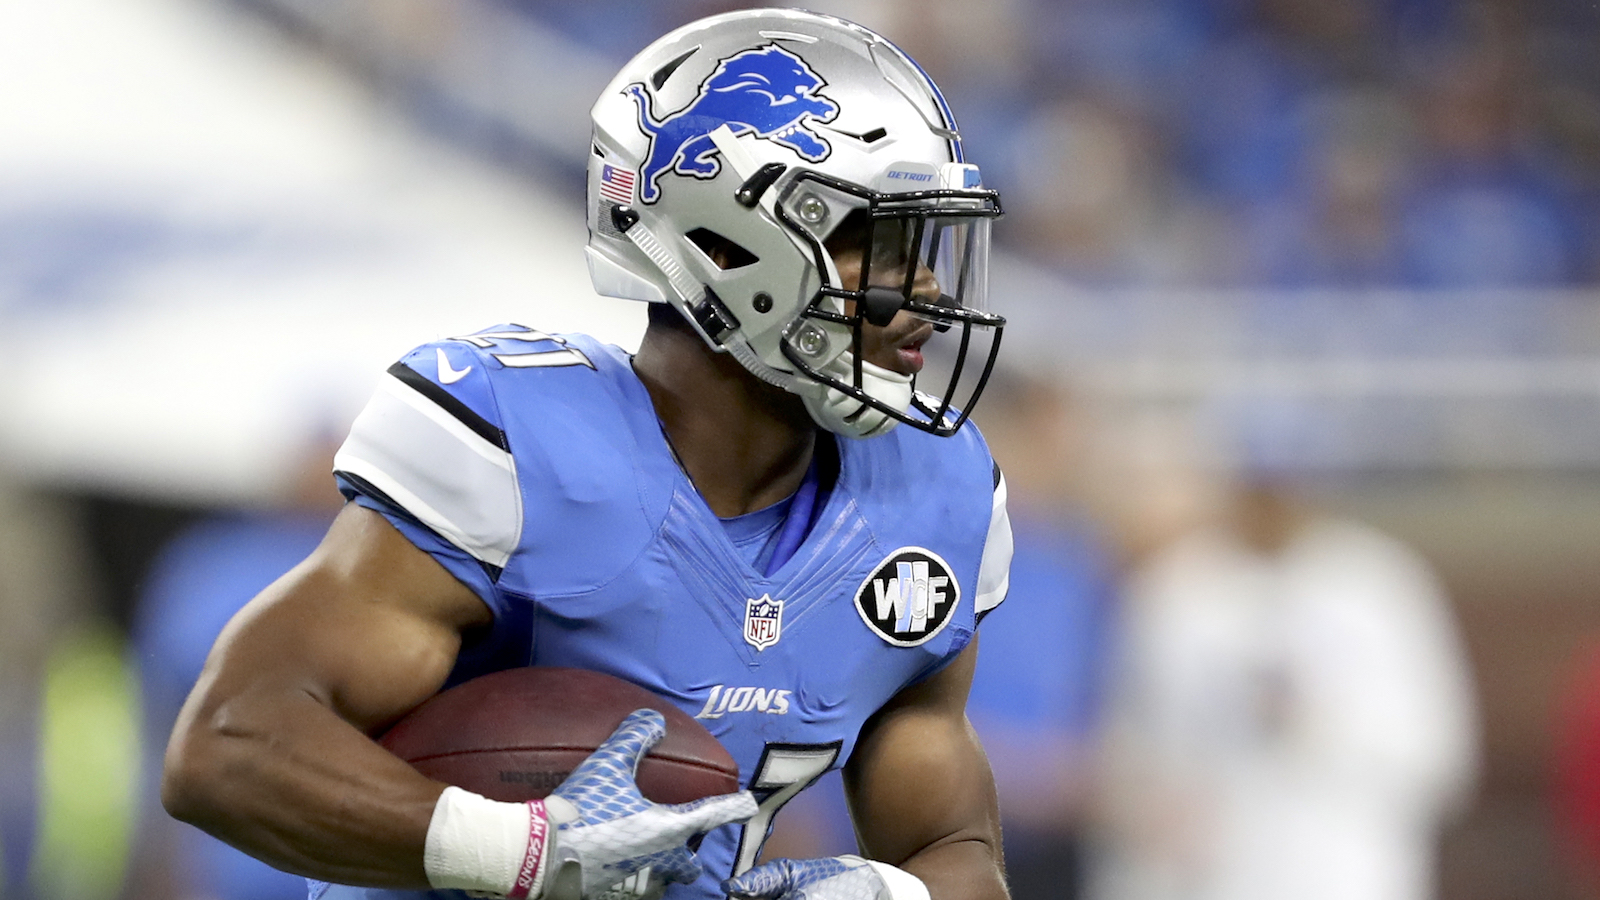 Lions place RB Ameer Abdullah on injured reserve with foot injury